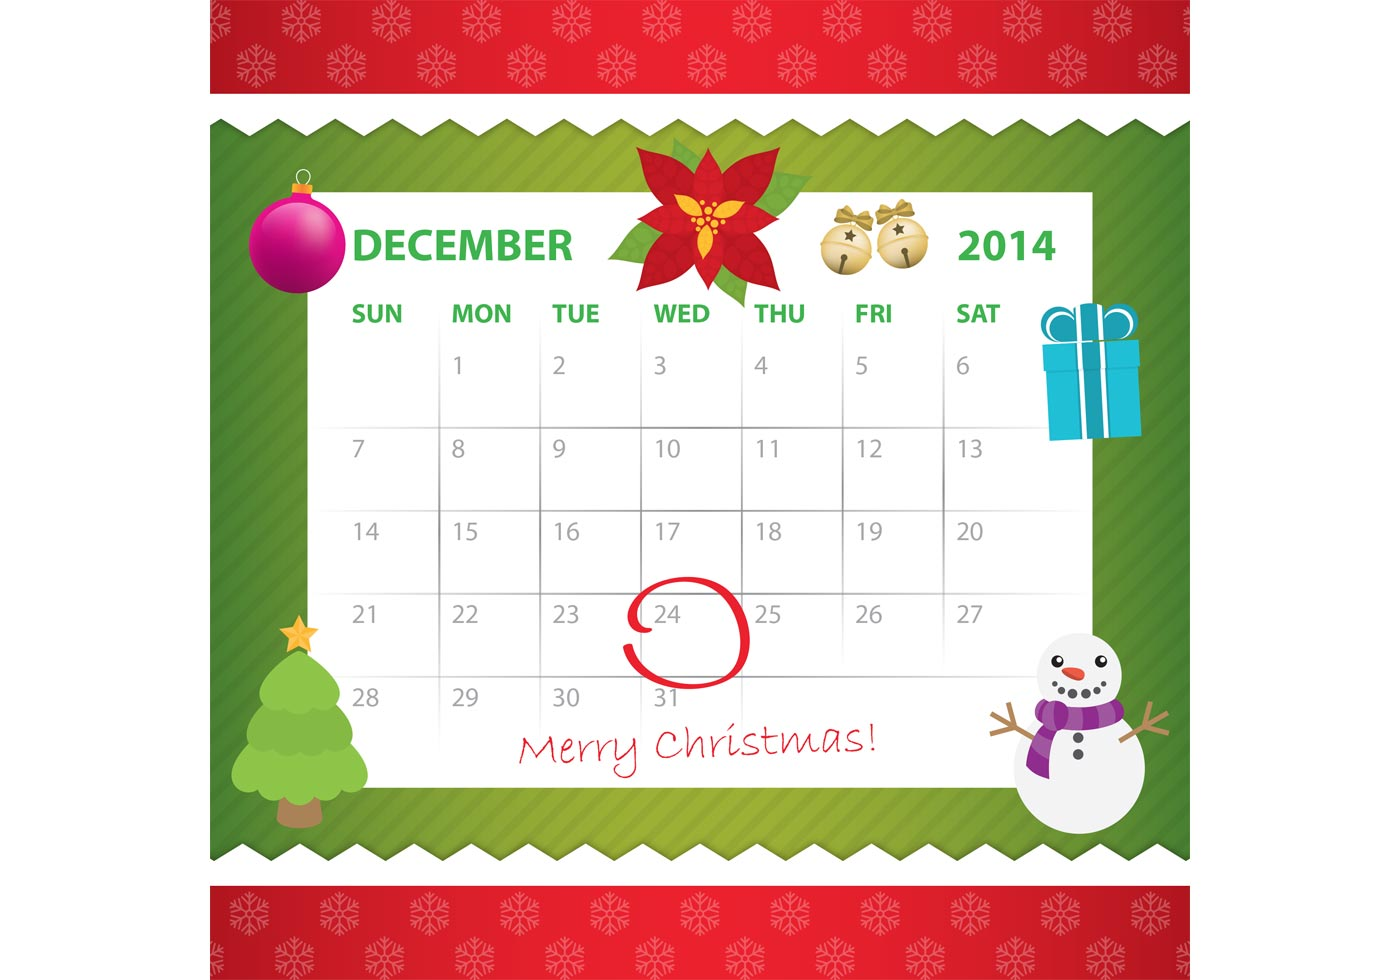 December Calendar Art : December calendar free vector art free downloads